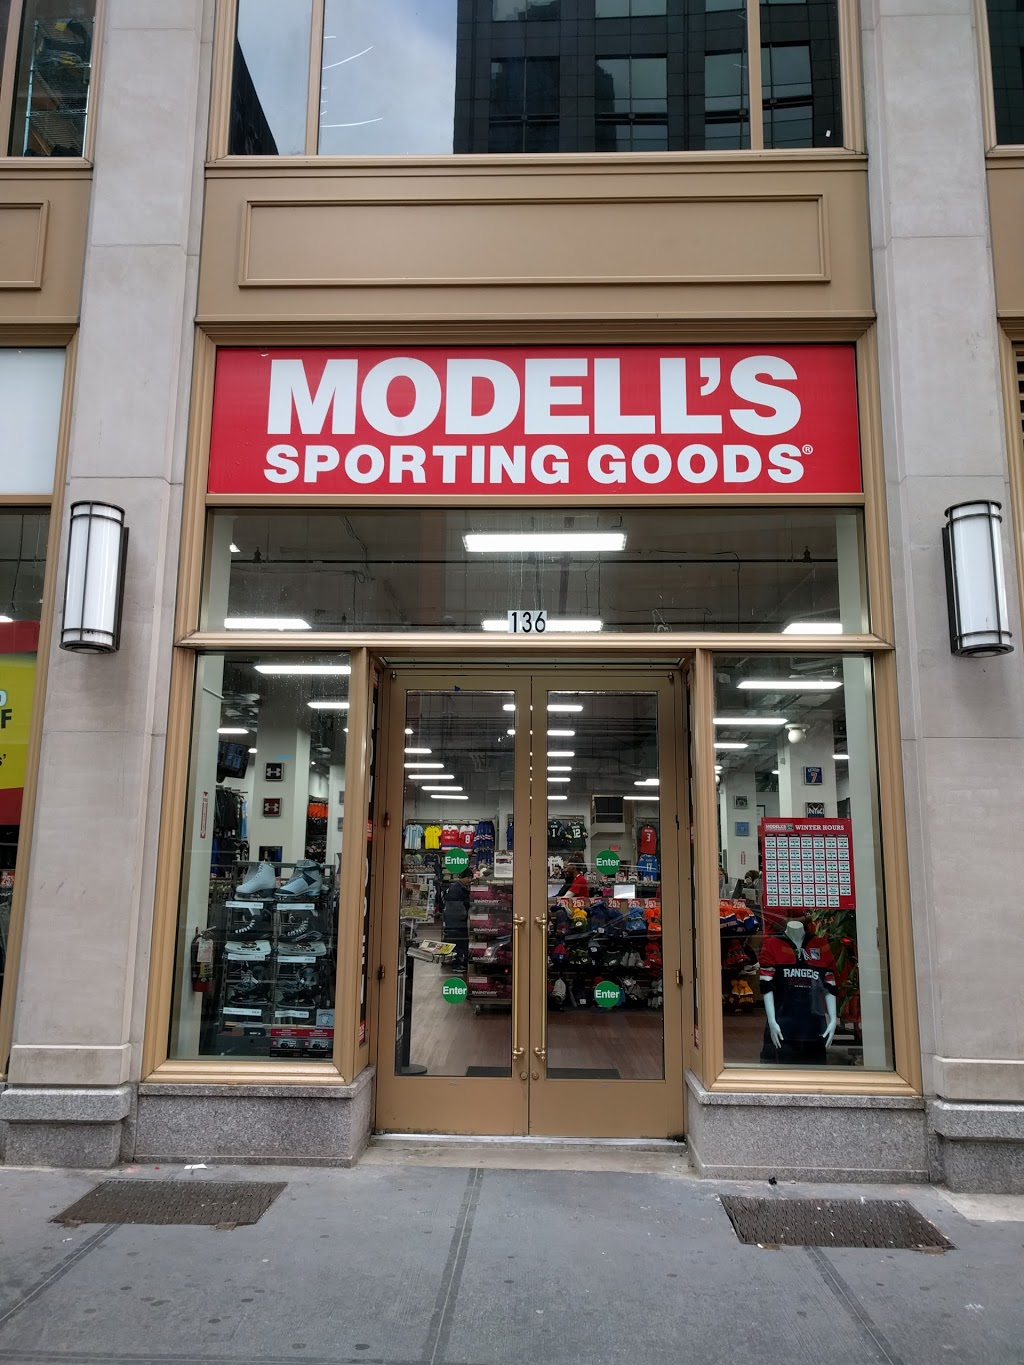 Modells Sporting Goods   store   234 W 42nd St, New York, NY 10036, USA   8002756633 OR +1 800-275-6633